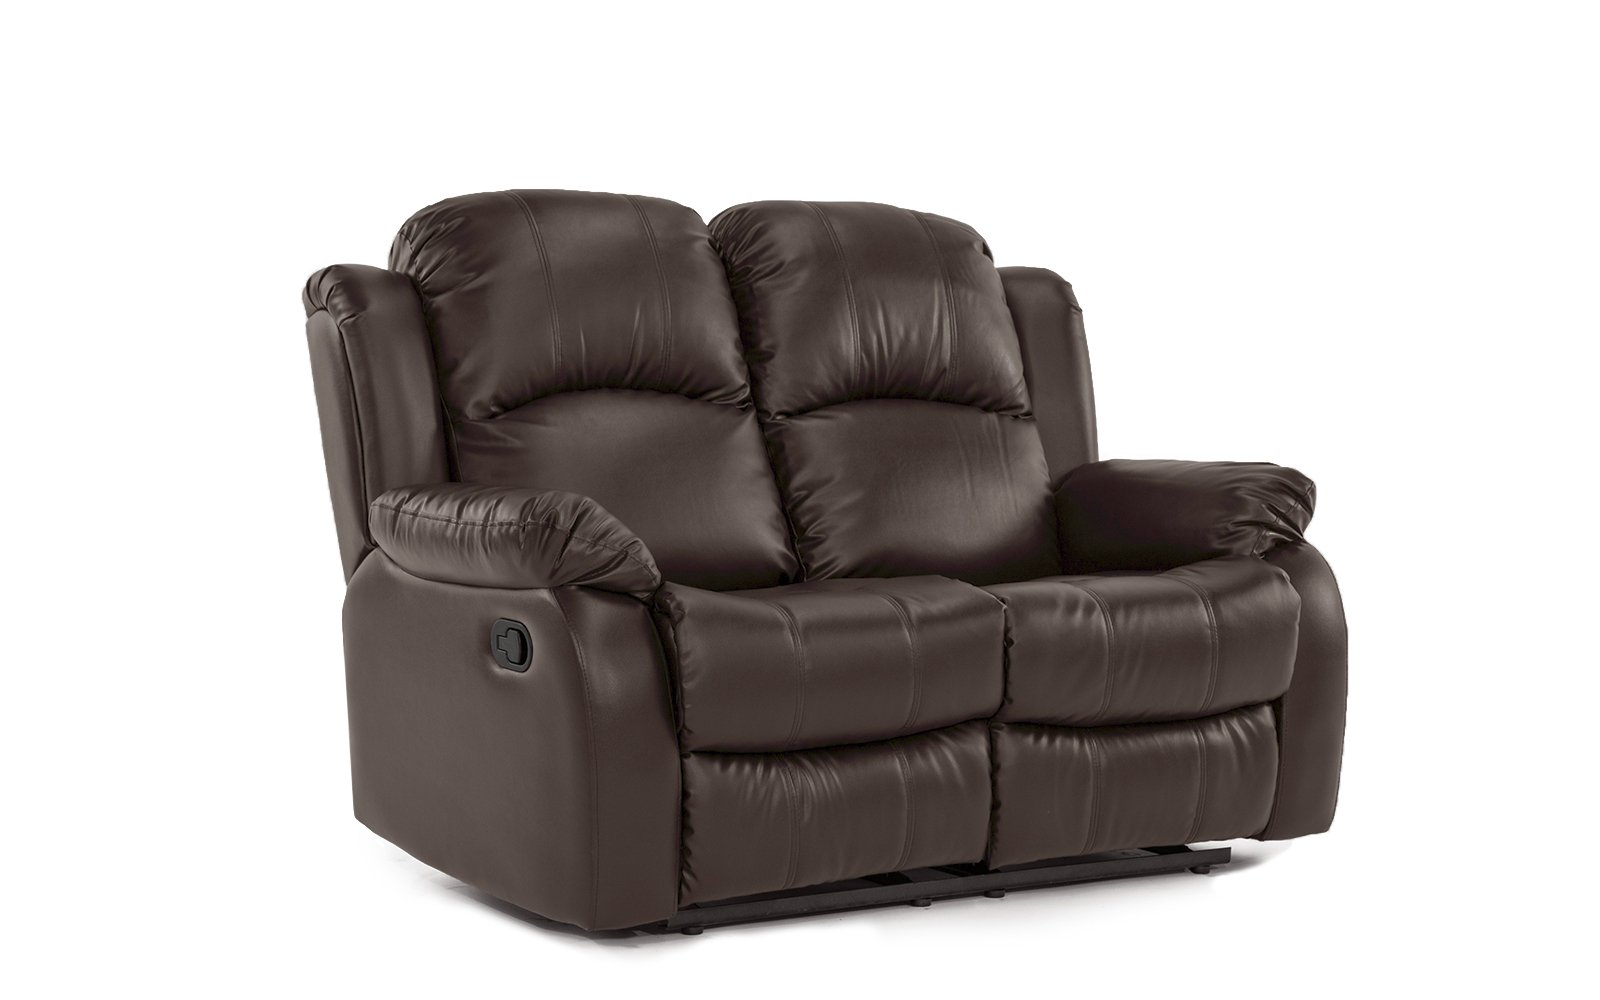 Divano Roma Furniture Classic and Traditional Bonded Leather Recliner Chair, Love Seat, Sofa Size - 1 Seater, 2 Seater, 3 Seater Set (2 Seater)